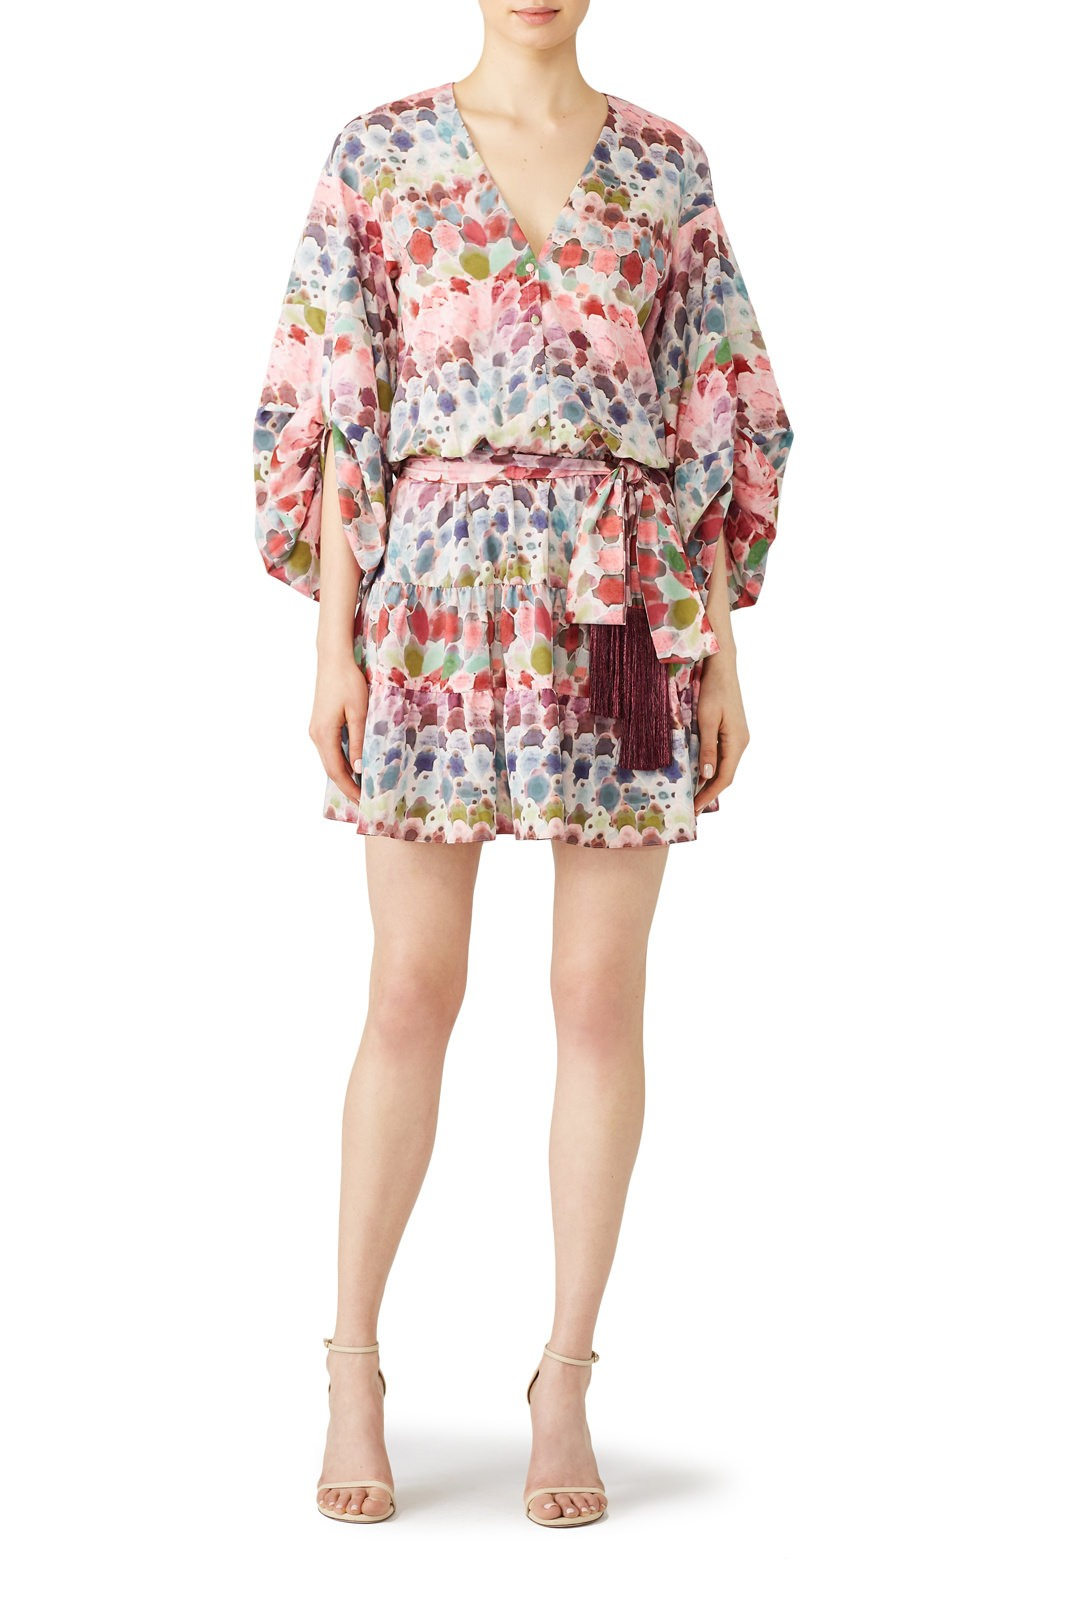 Alexis Damiani Dress - This could be a great day to night dress!